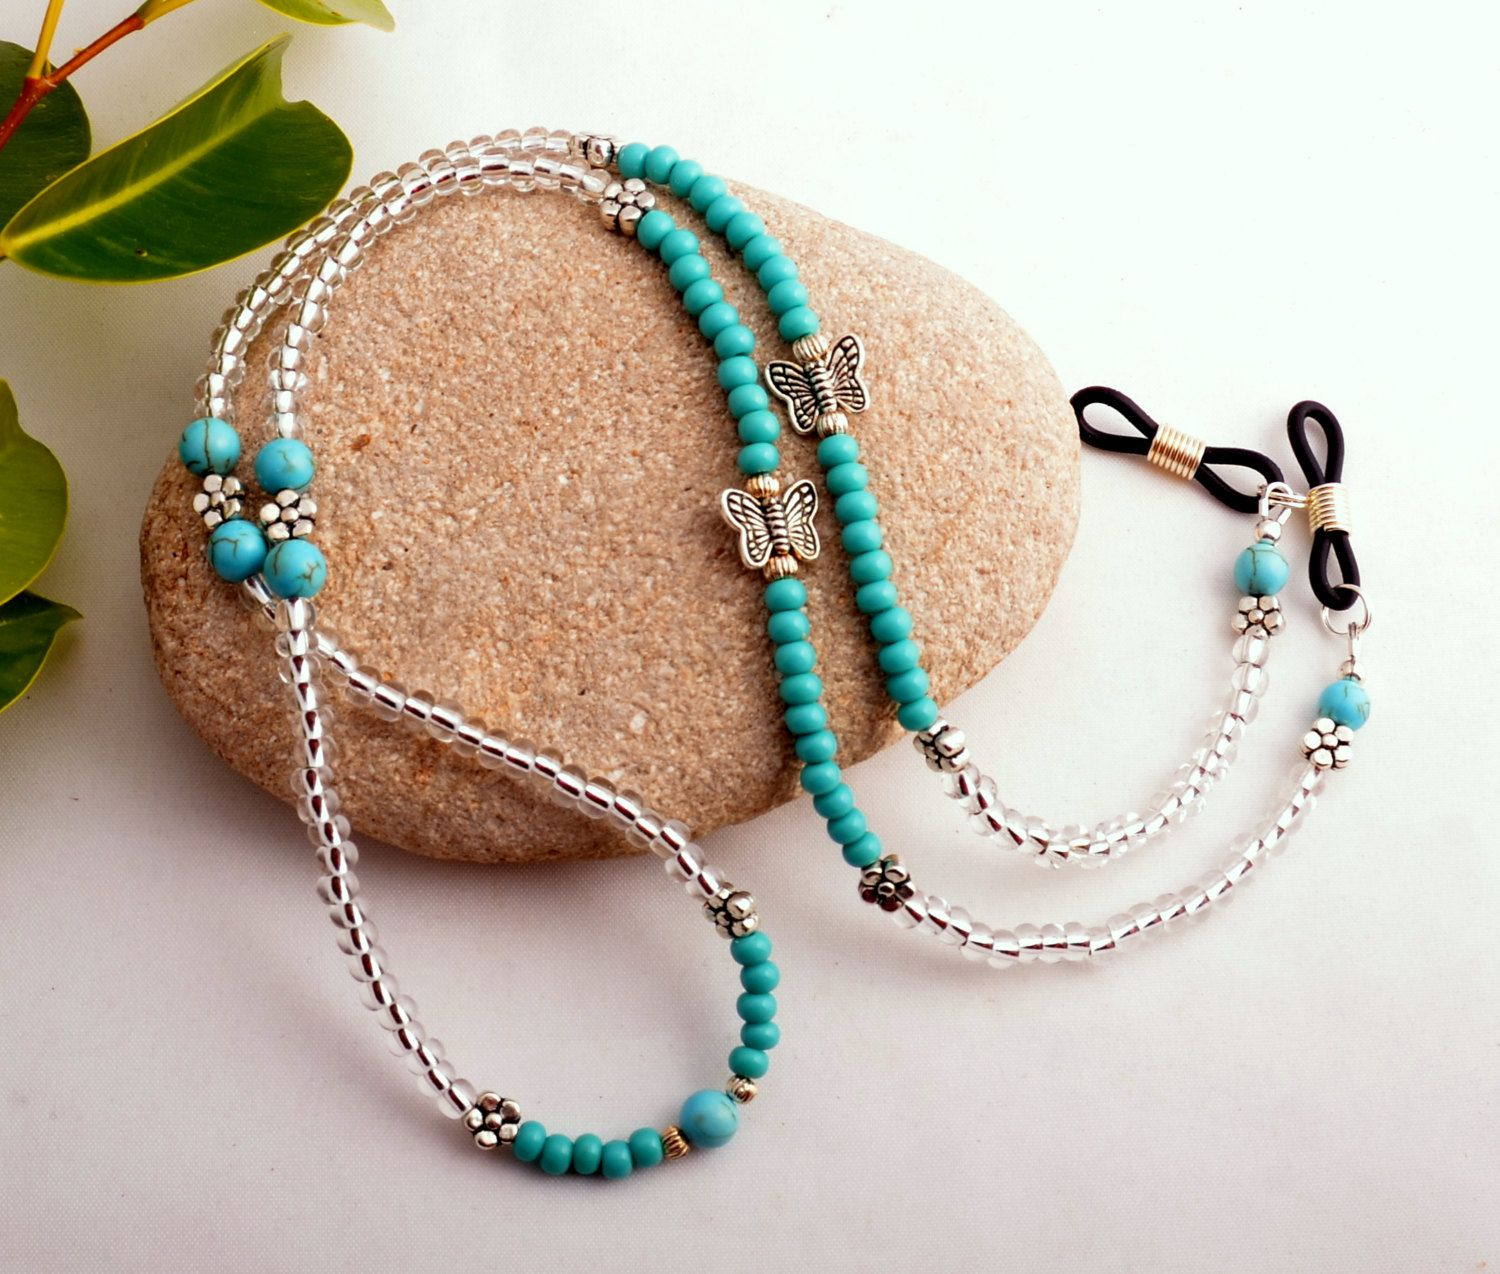 530bef3670f Beaded Eyeglass Chain Glasses Holder Turquoise and by SoCalStudio ...